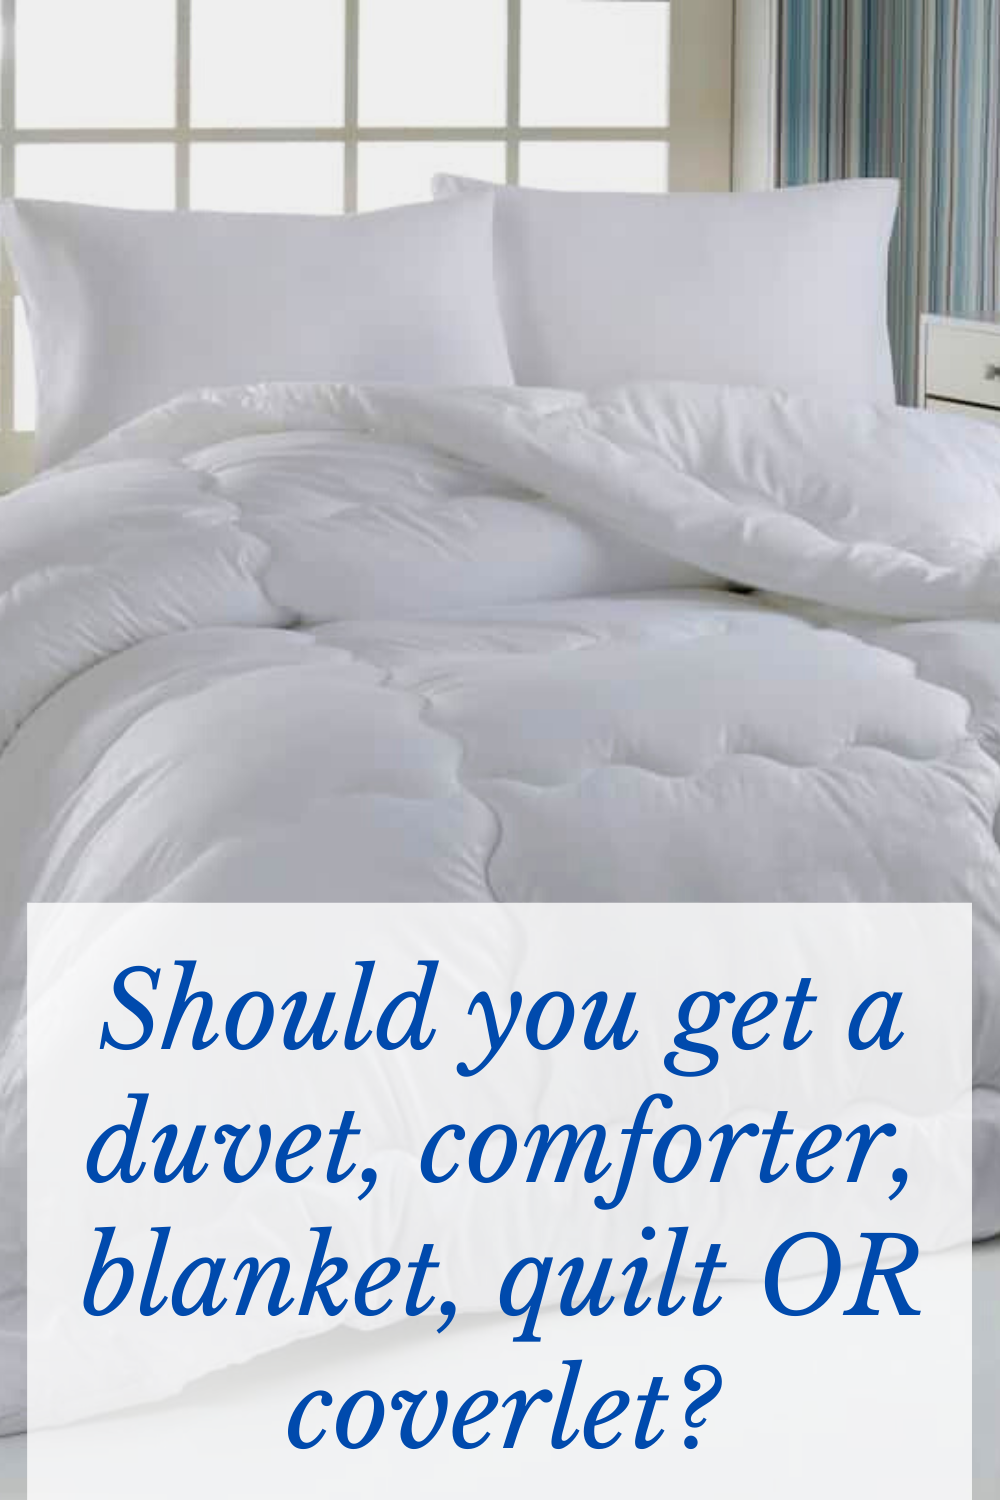 Duvet Vs Comforter Vs Blanket Vs Quilt Vs Coverlet What Are The Differences In 2020 Duvet Comforters Comforters Duvet